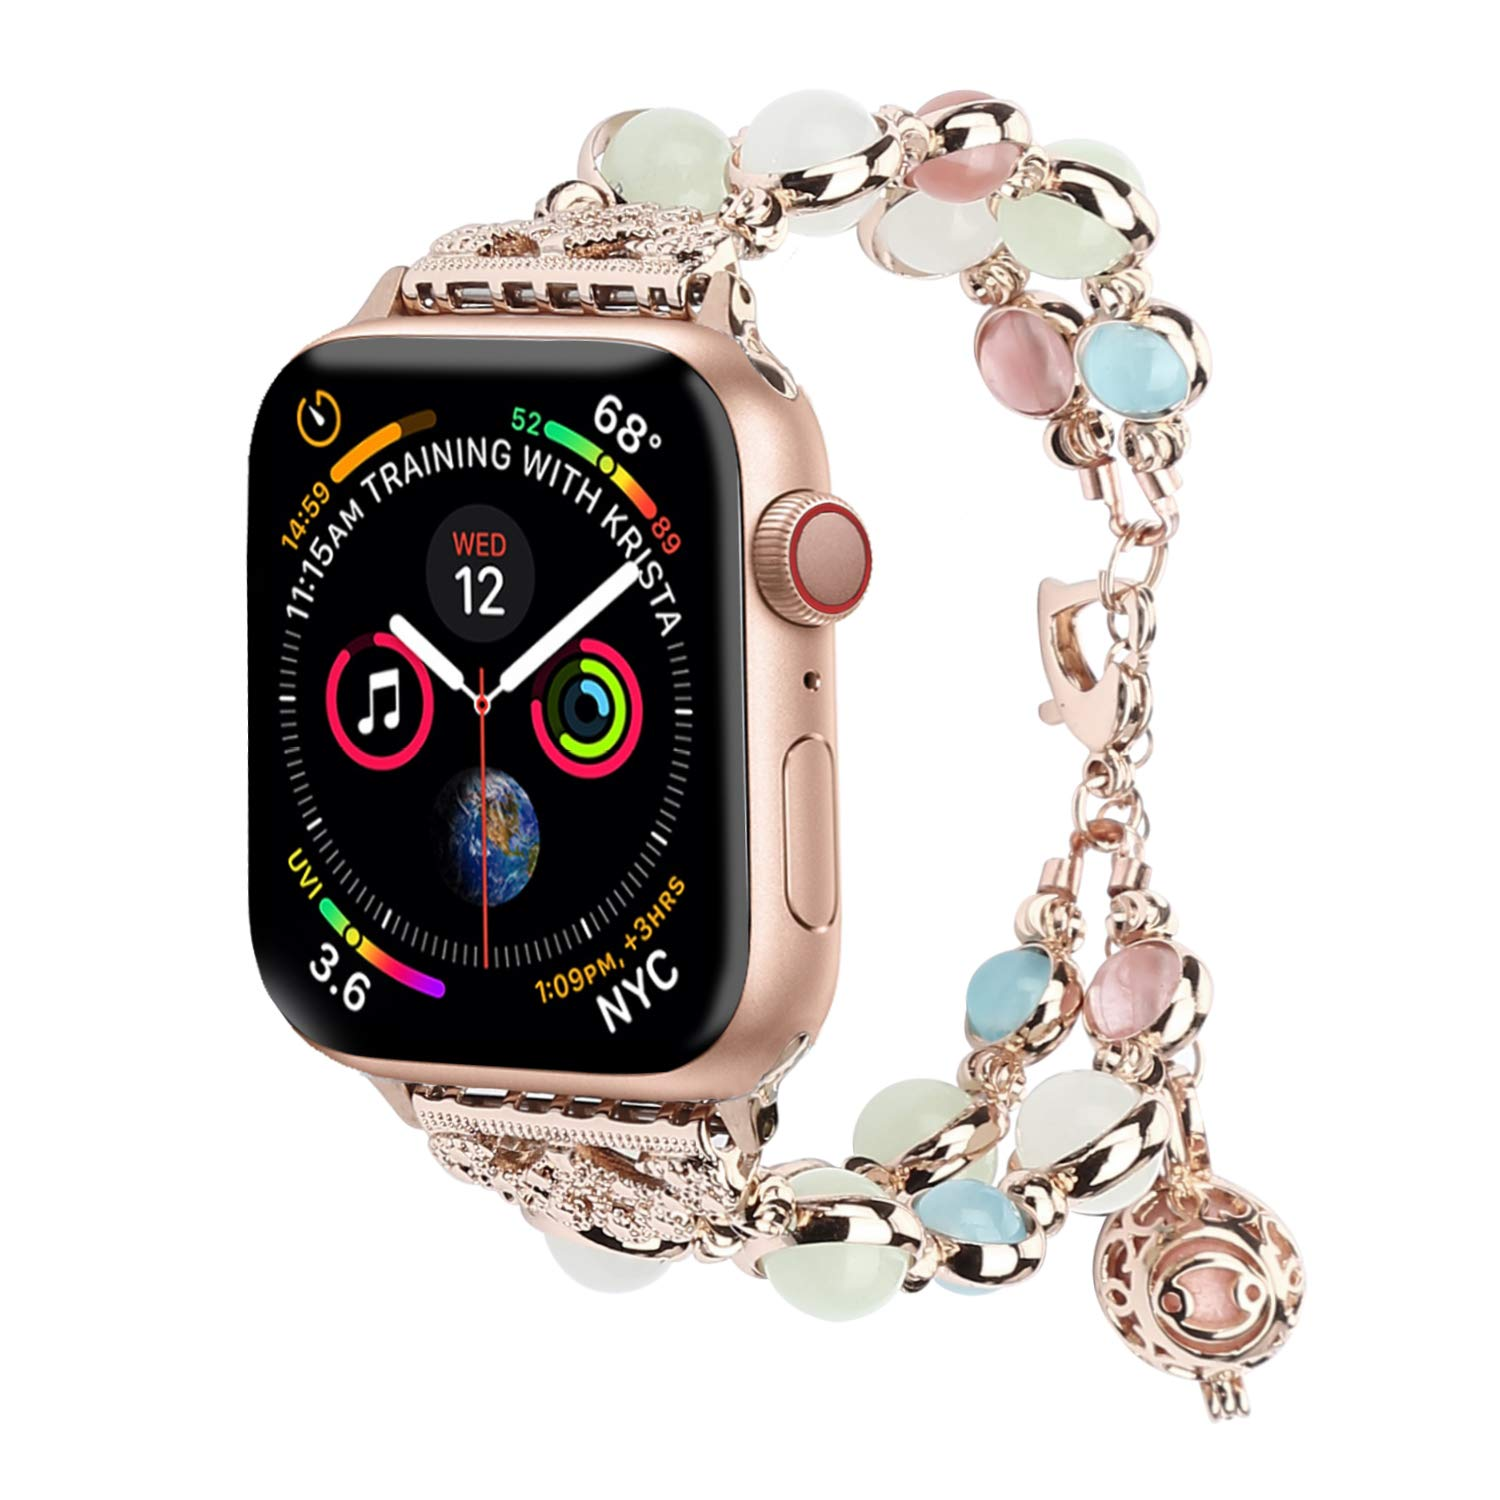 TILON for Apple Watch Band 38mm 40mm Series 4/3/2/1, Adjustable Wristband Handmade Night Luminous Pearl iWatch Bracelet with Essential Oil/Perfume Storage Pendant for Women/Girls(Rose Gold) by TILON